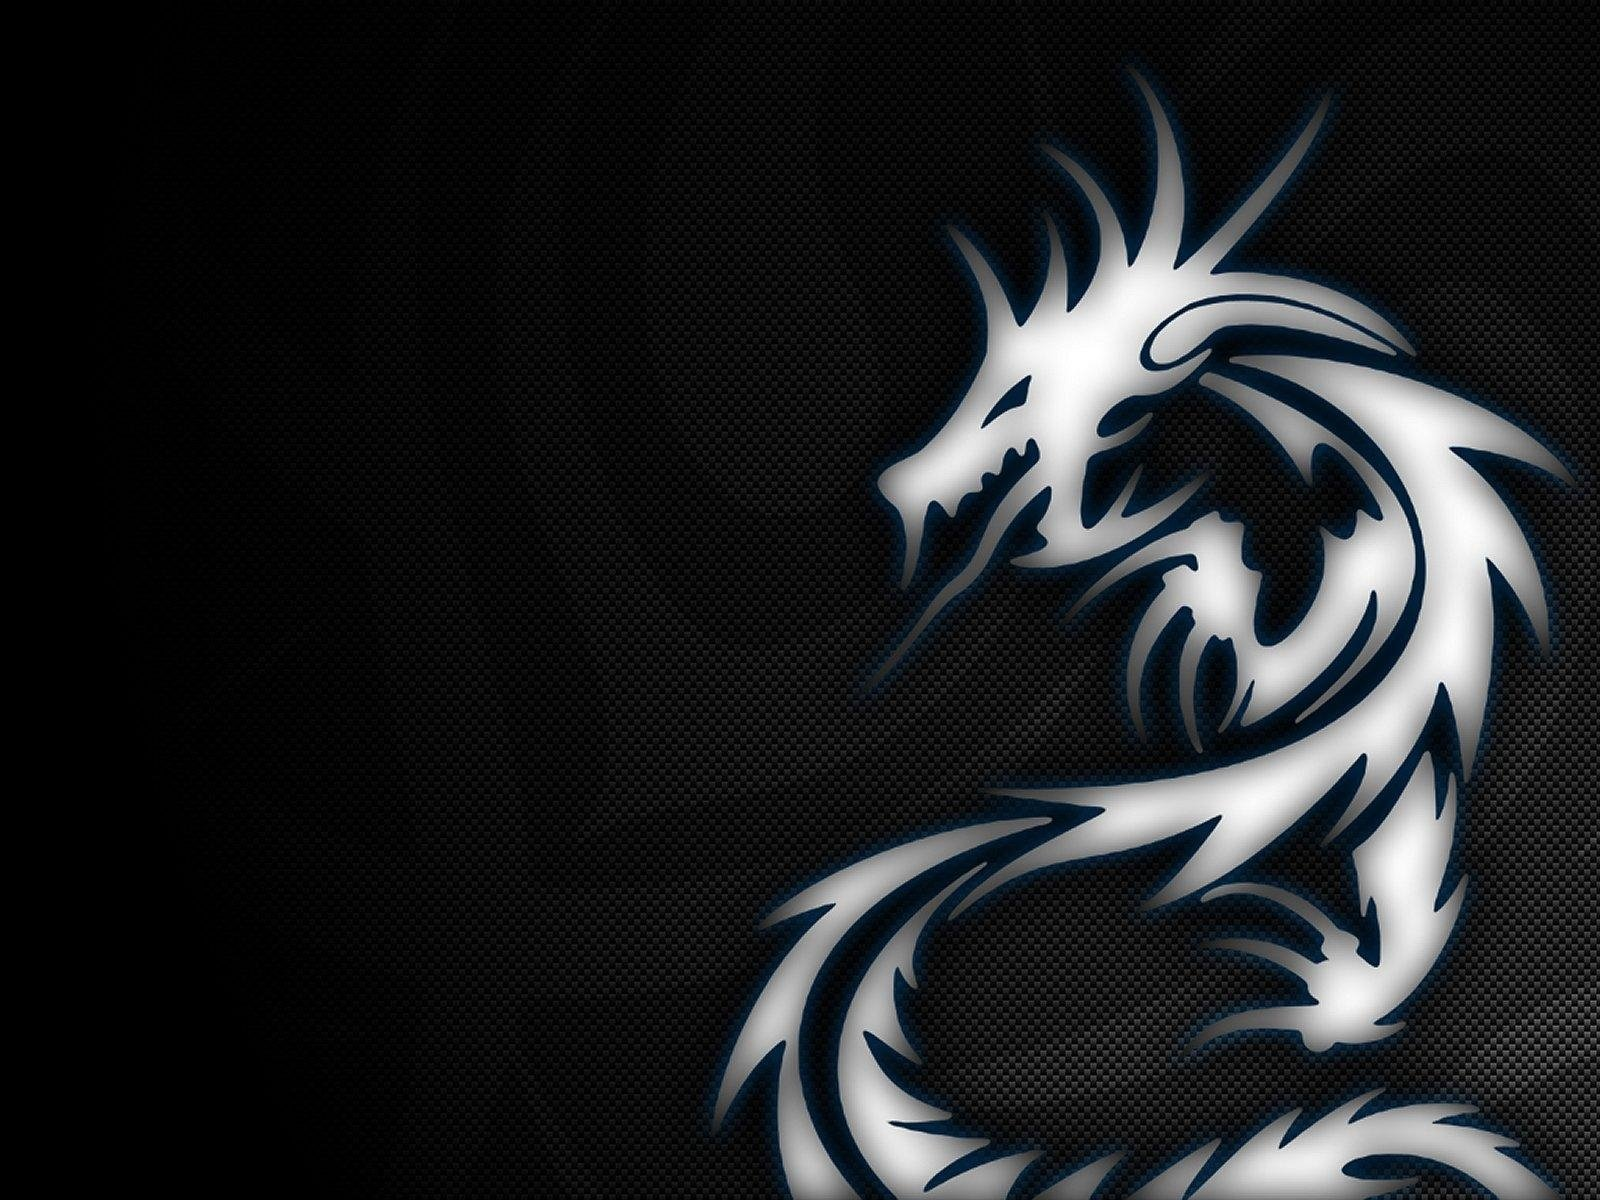 Dragon-HD-Backgrounds-wallpaper-wpc5804413